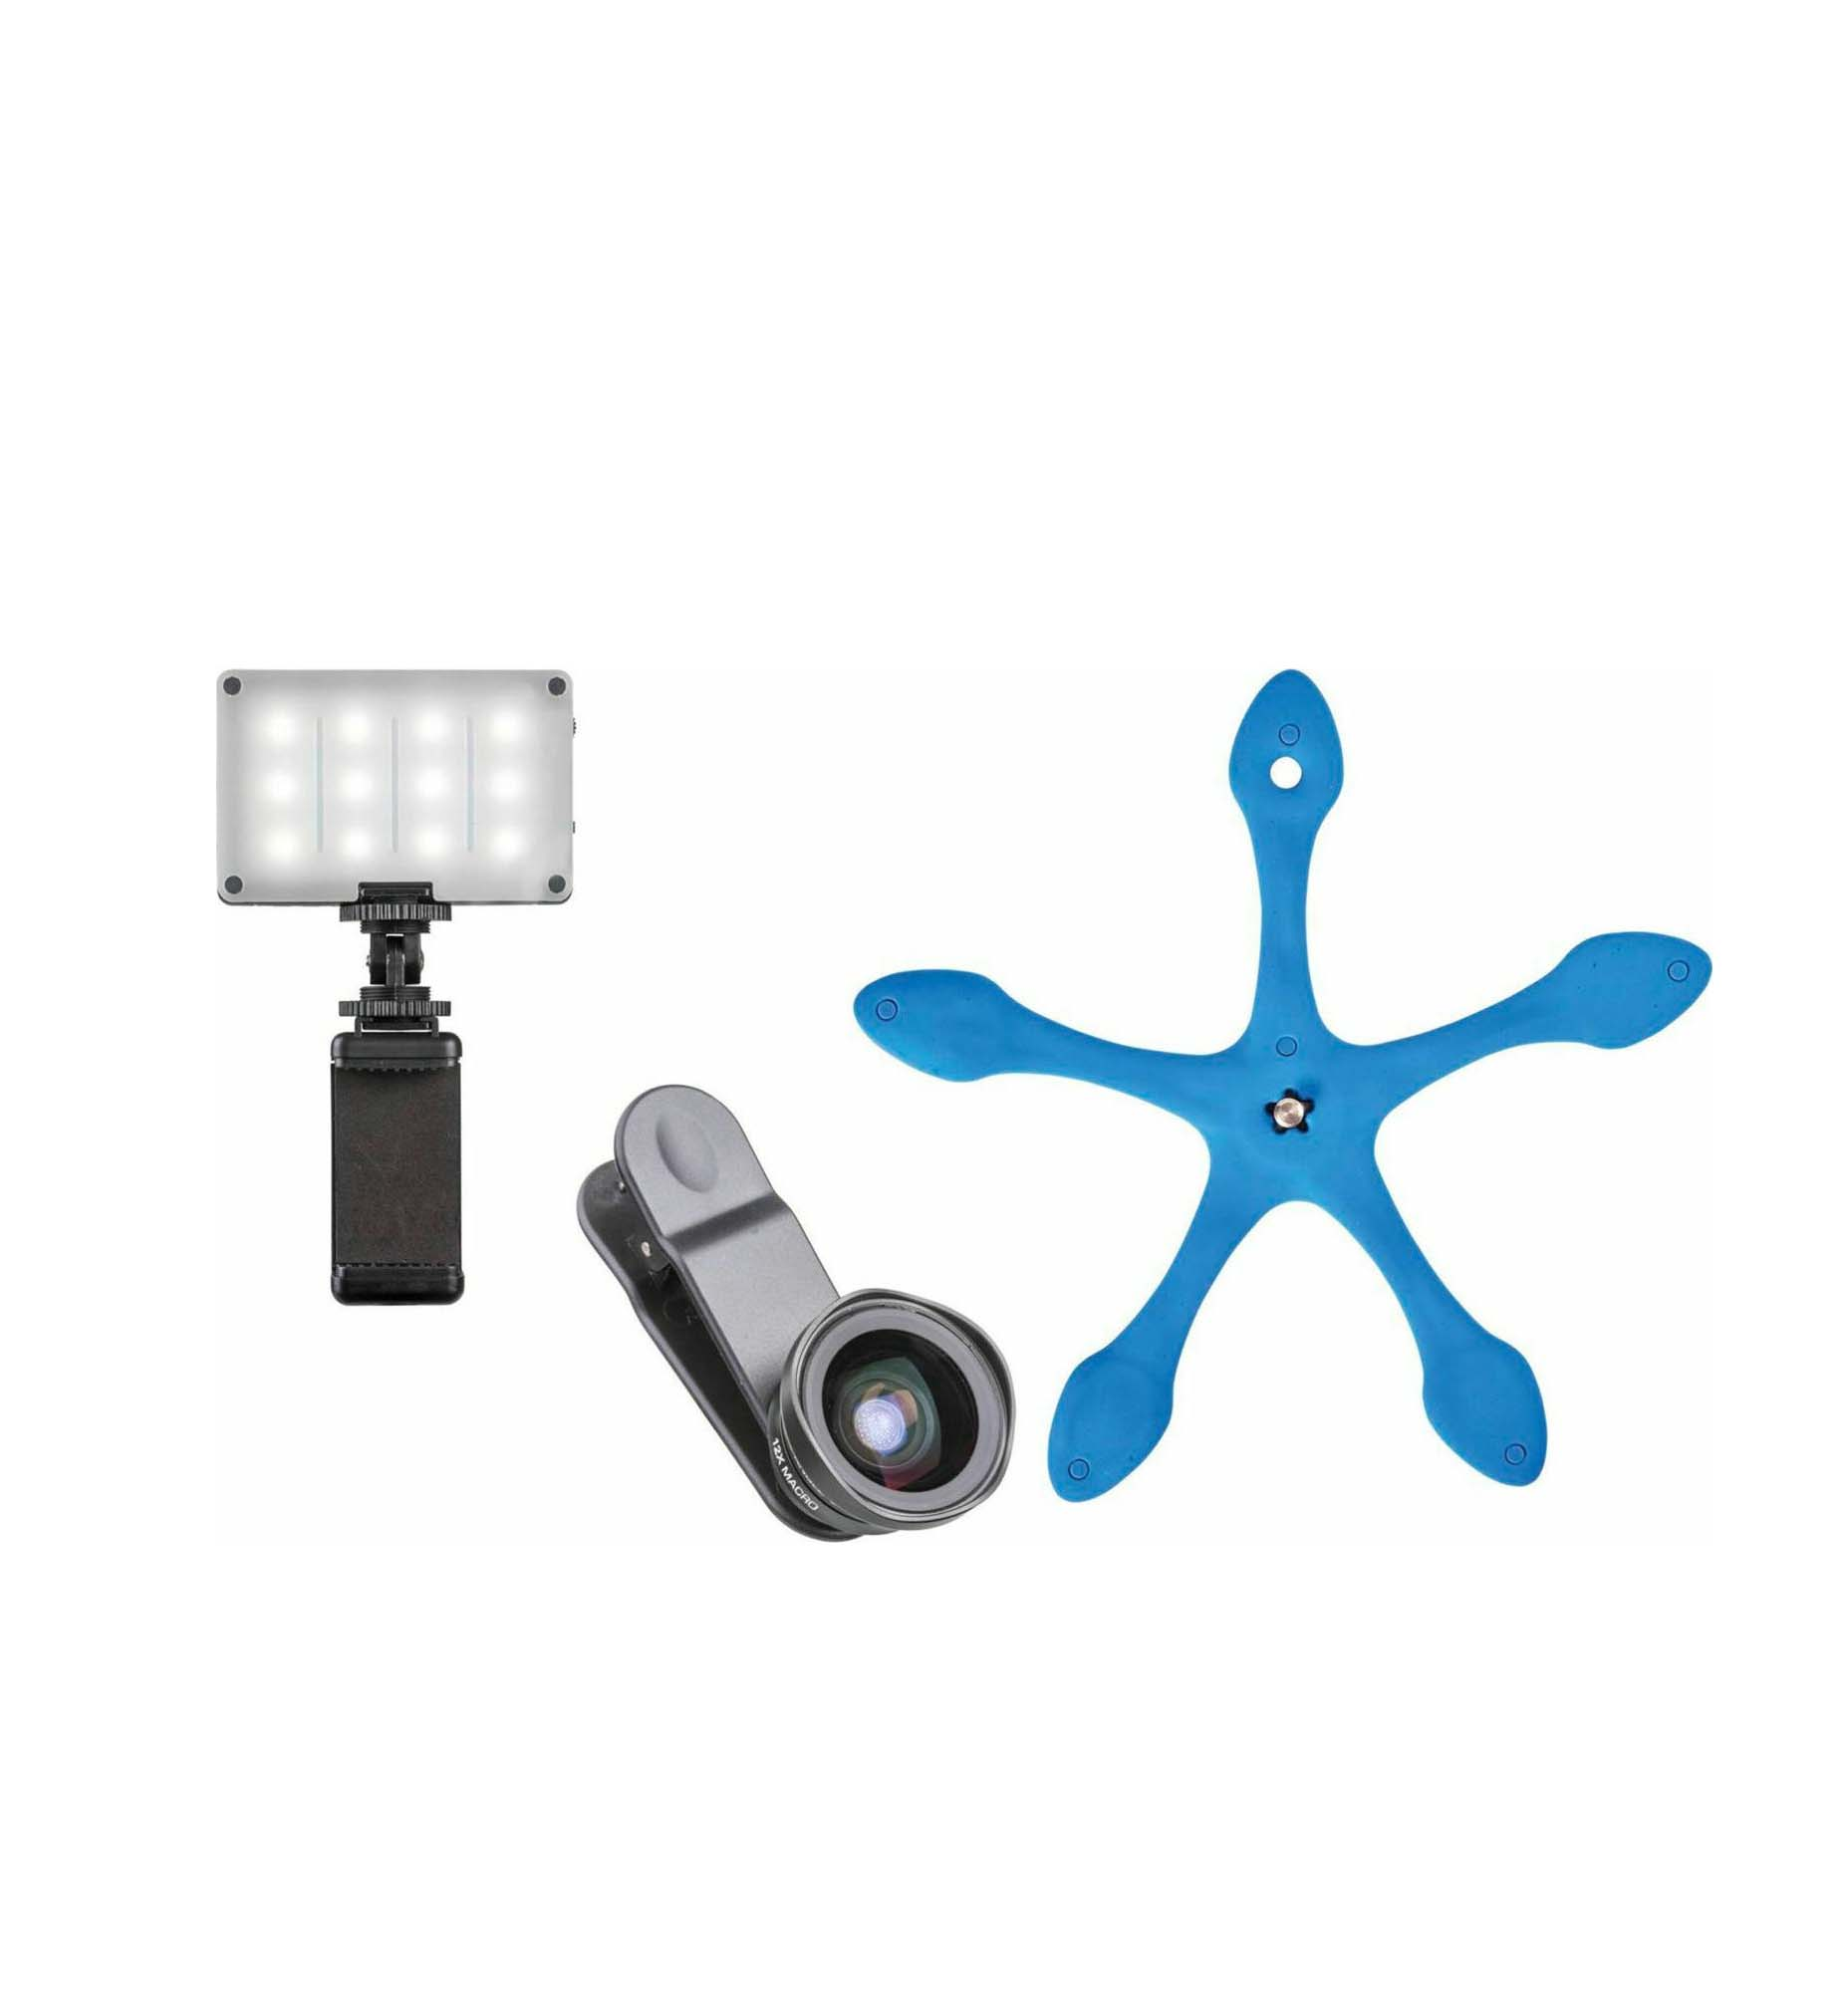 Pictar Video Chat Kit